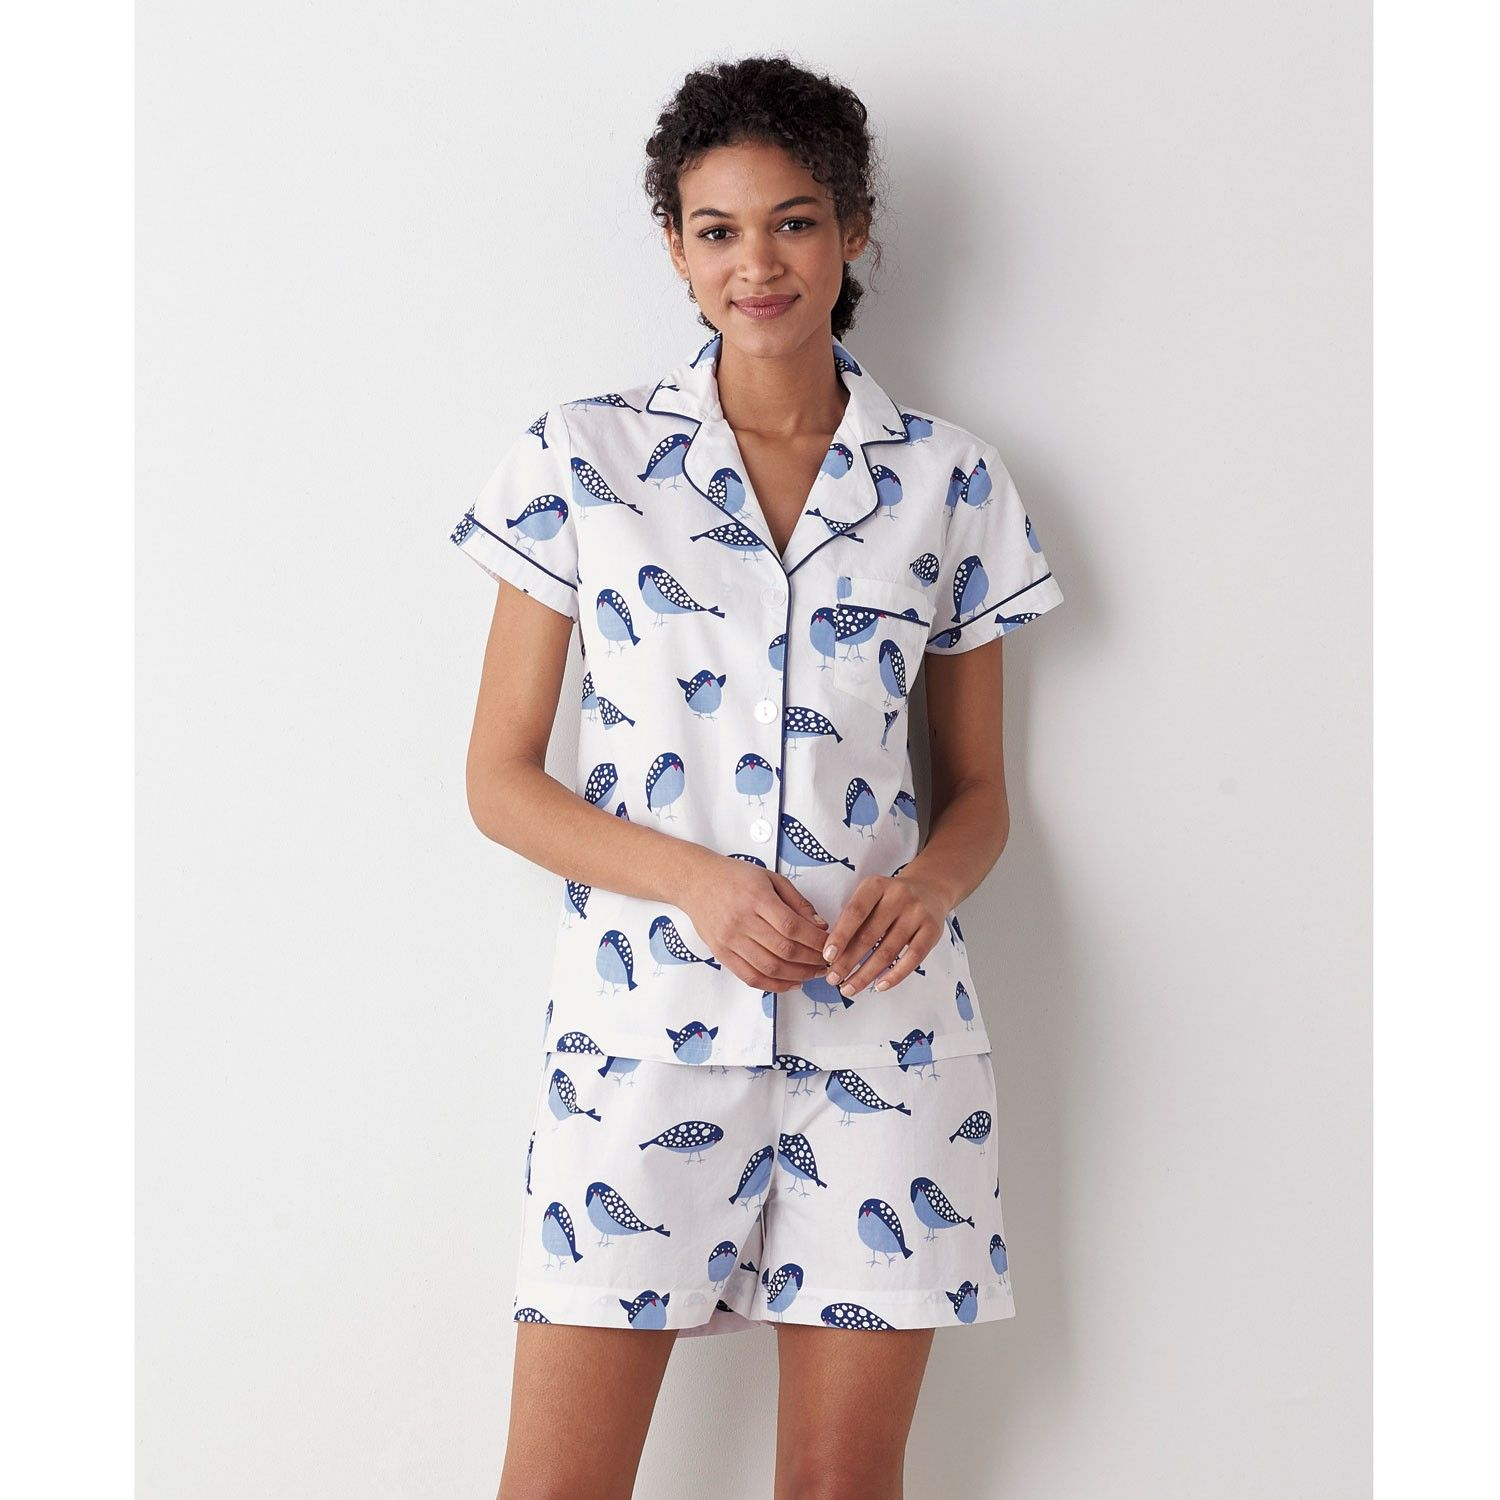 a8fc1caec8 Crisp cotton poplin pajama shorts set for women. 2-pc set includes  button-down shirt and pajama shorts in a sweet songbird motif.